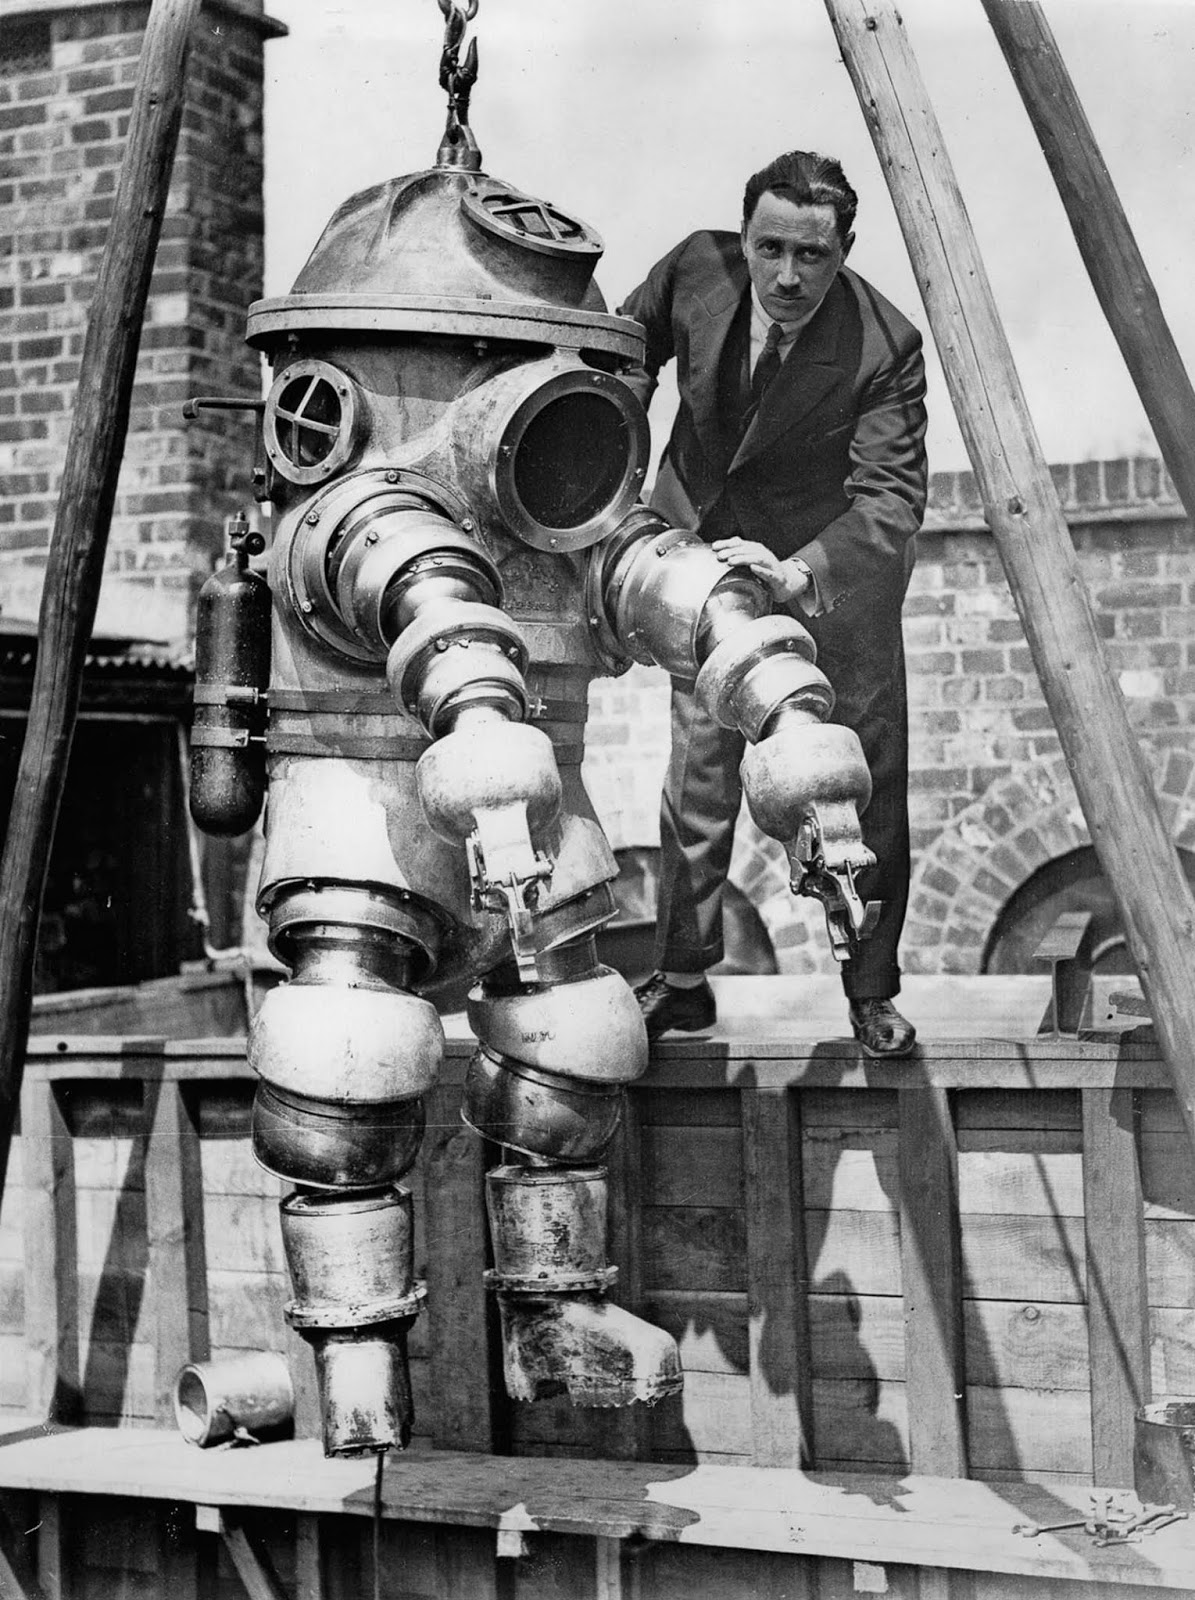 J.S. Peress, the inventor of a new armored diving suit, gets his device ready for tests in a tank at Weybridge, United Kingdom. 1930.